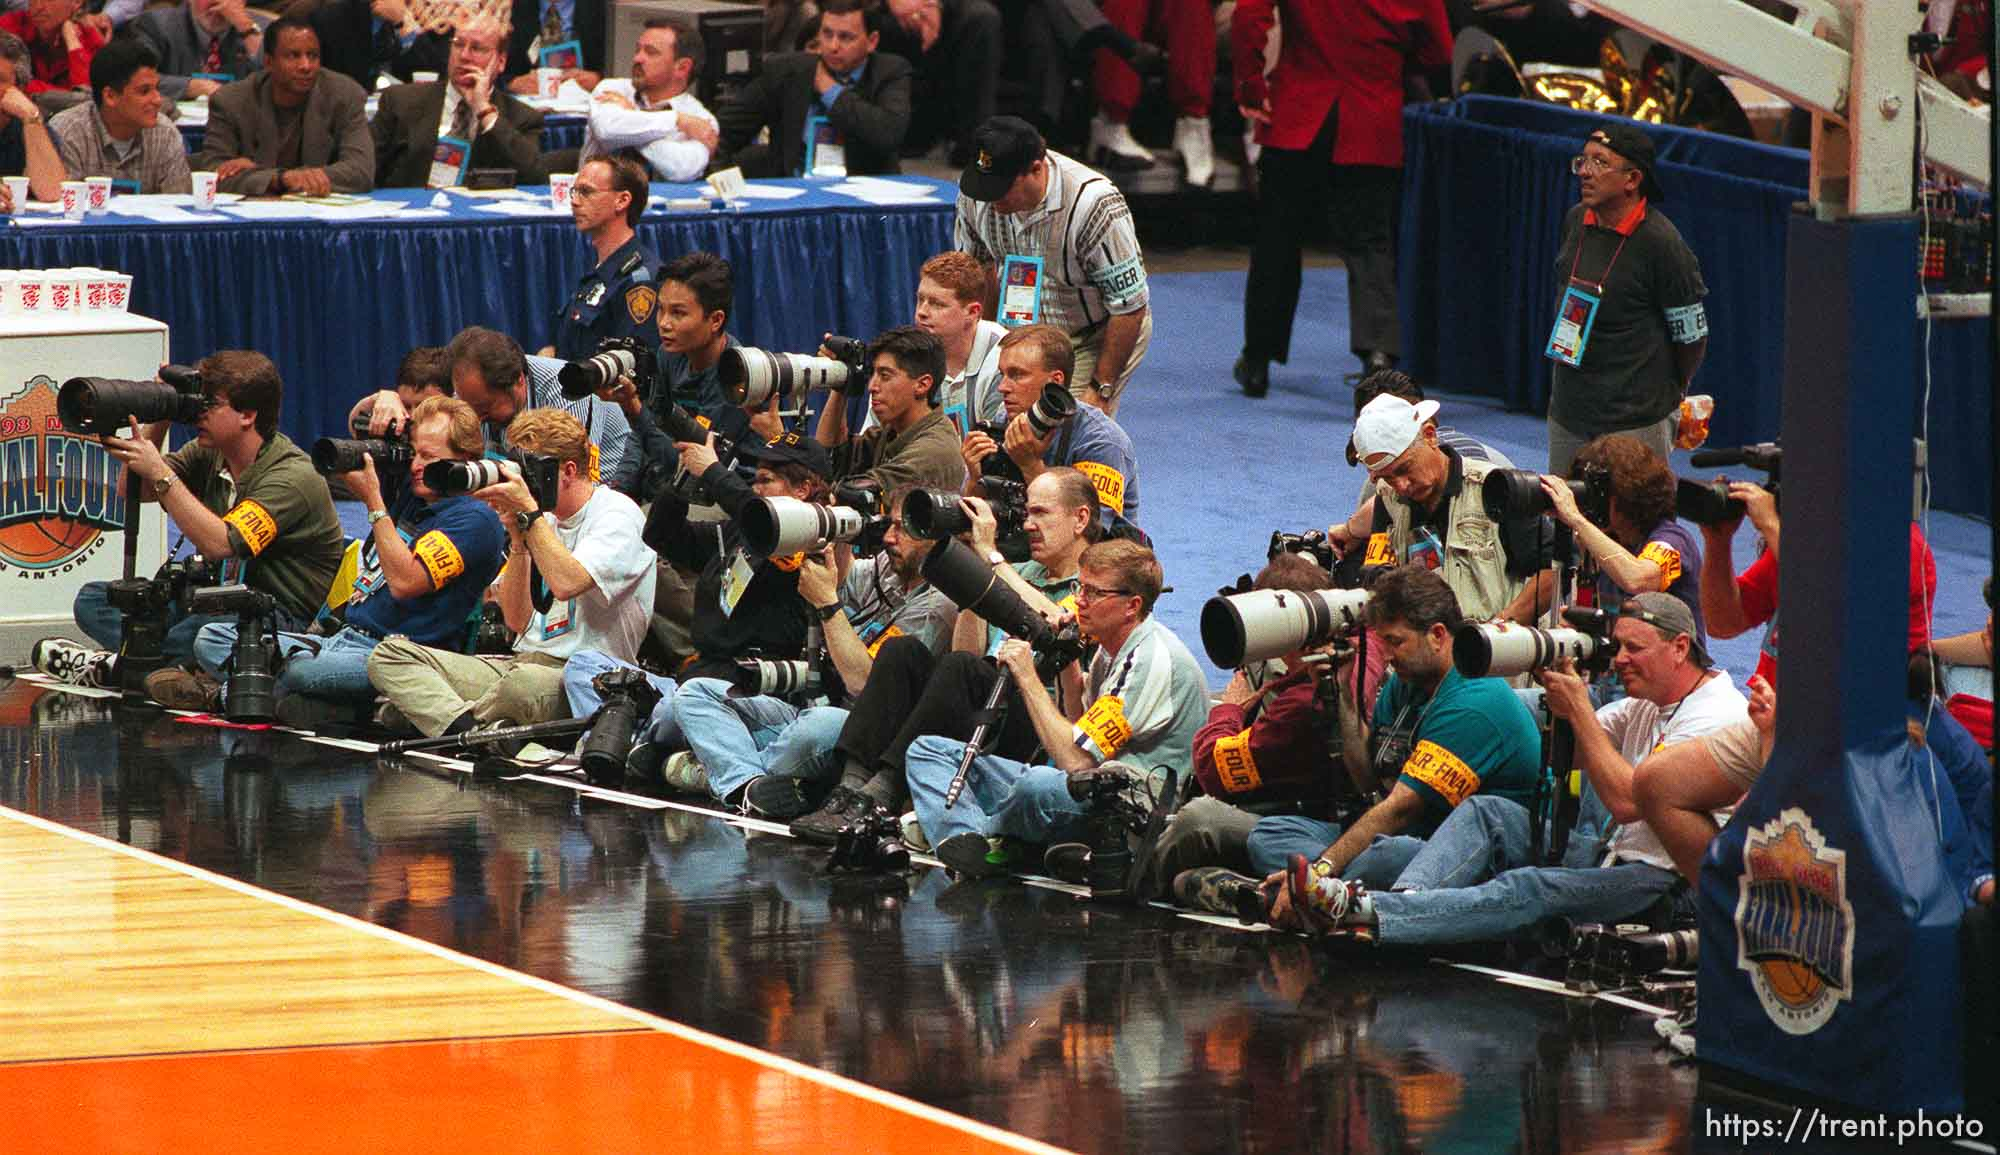 Still photographers at the Final Four.